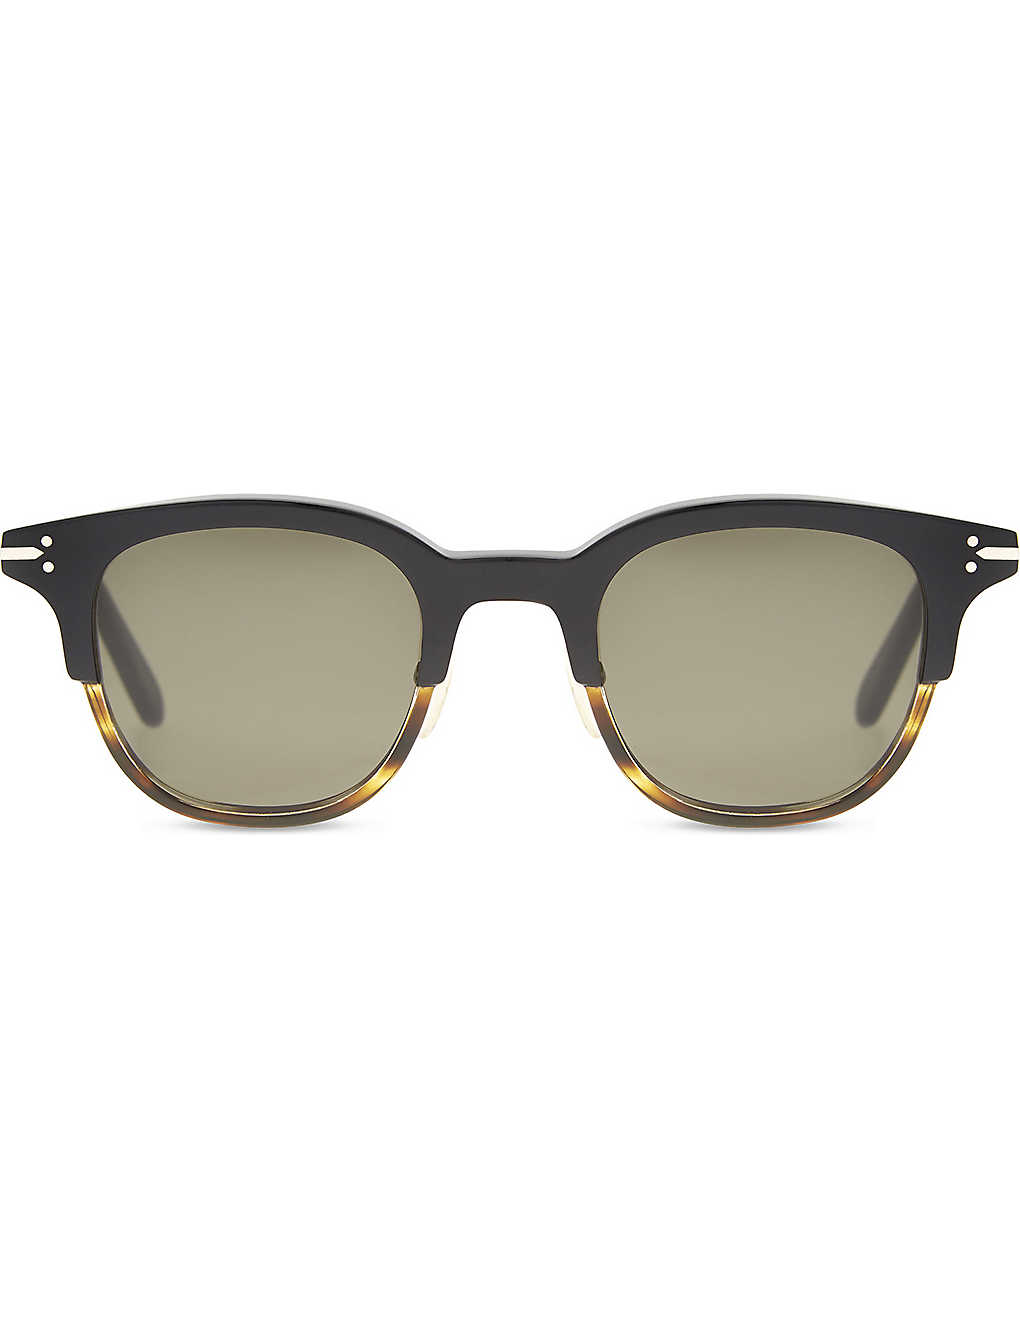 2f52802bfc6a CELINE - Cl41394 square-frame sunglasses | Selfridges.com